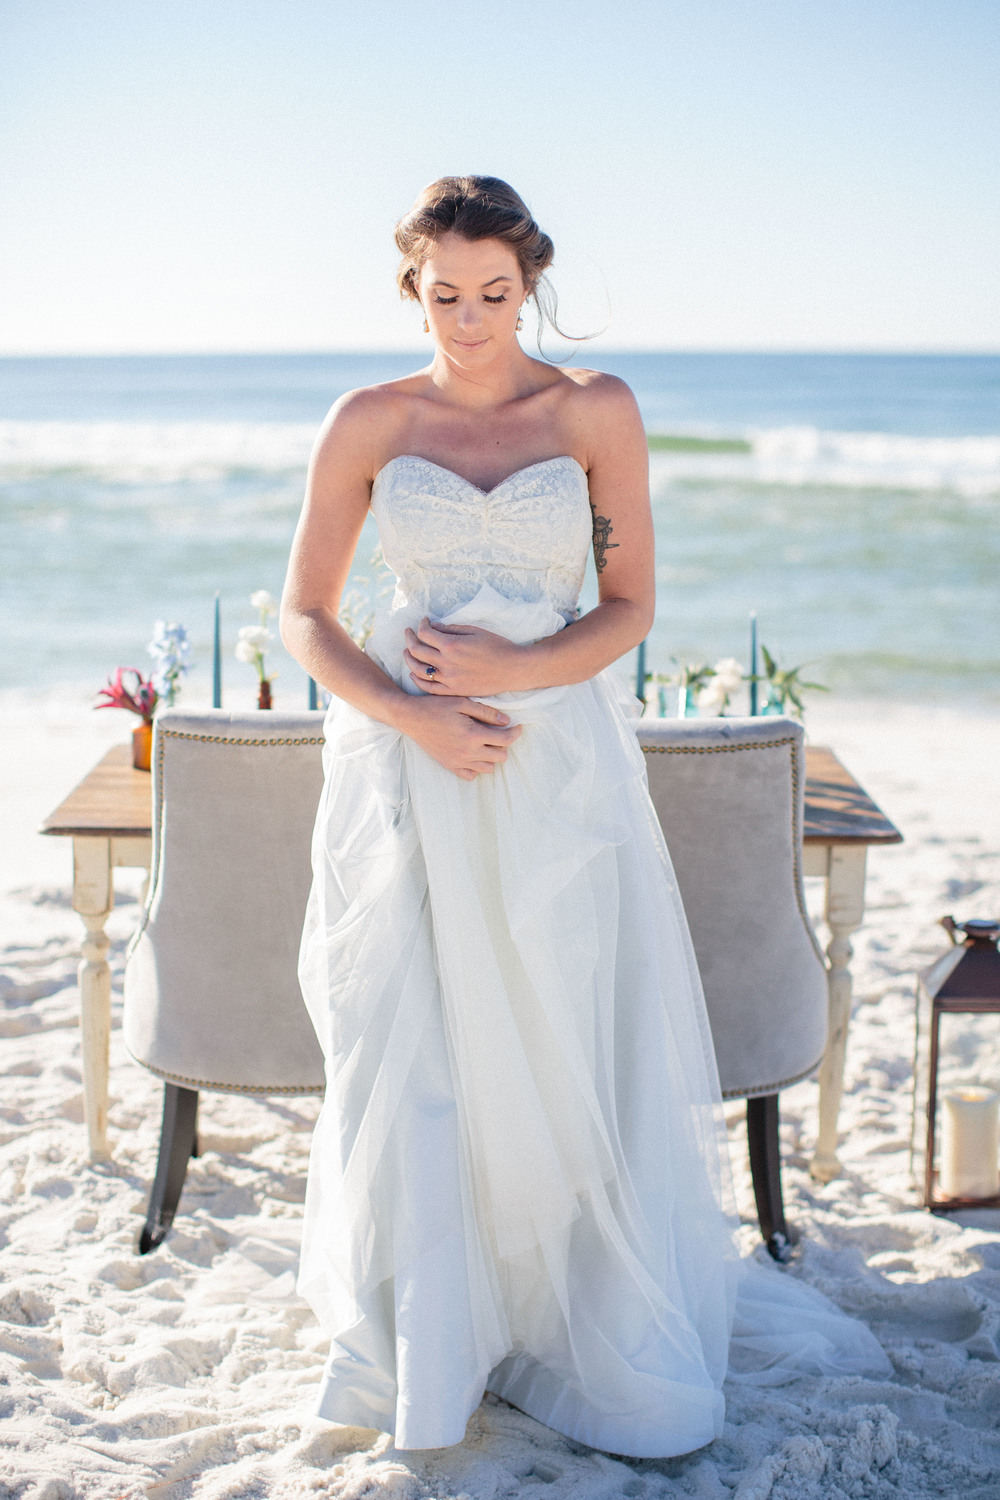 Ais-Portraits-ivey-weddings-and-events-ivory-and-beau-bridal-boutique-sunrise-wedding-sunrise-bridal-session-blue-dress-rebecca-schoneveld-wedding-dress-blue-velvet-wedding-beach-wedding-savannah-bridal-boutique-savannah-wedding-20.jpg